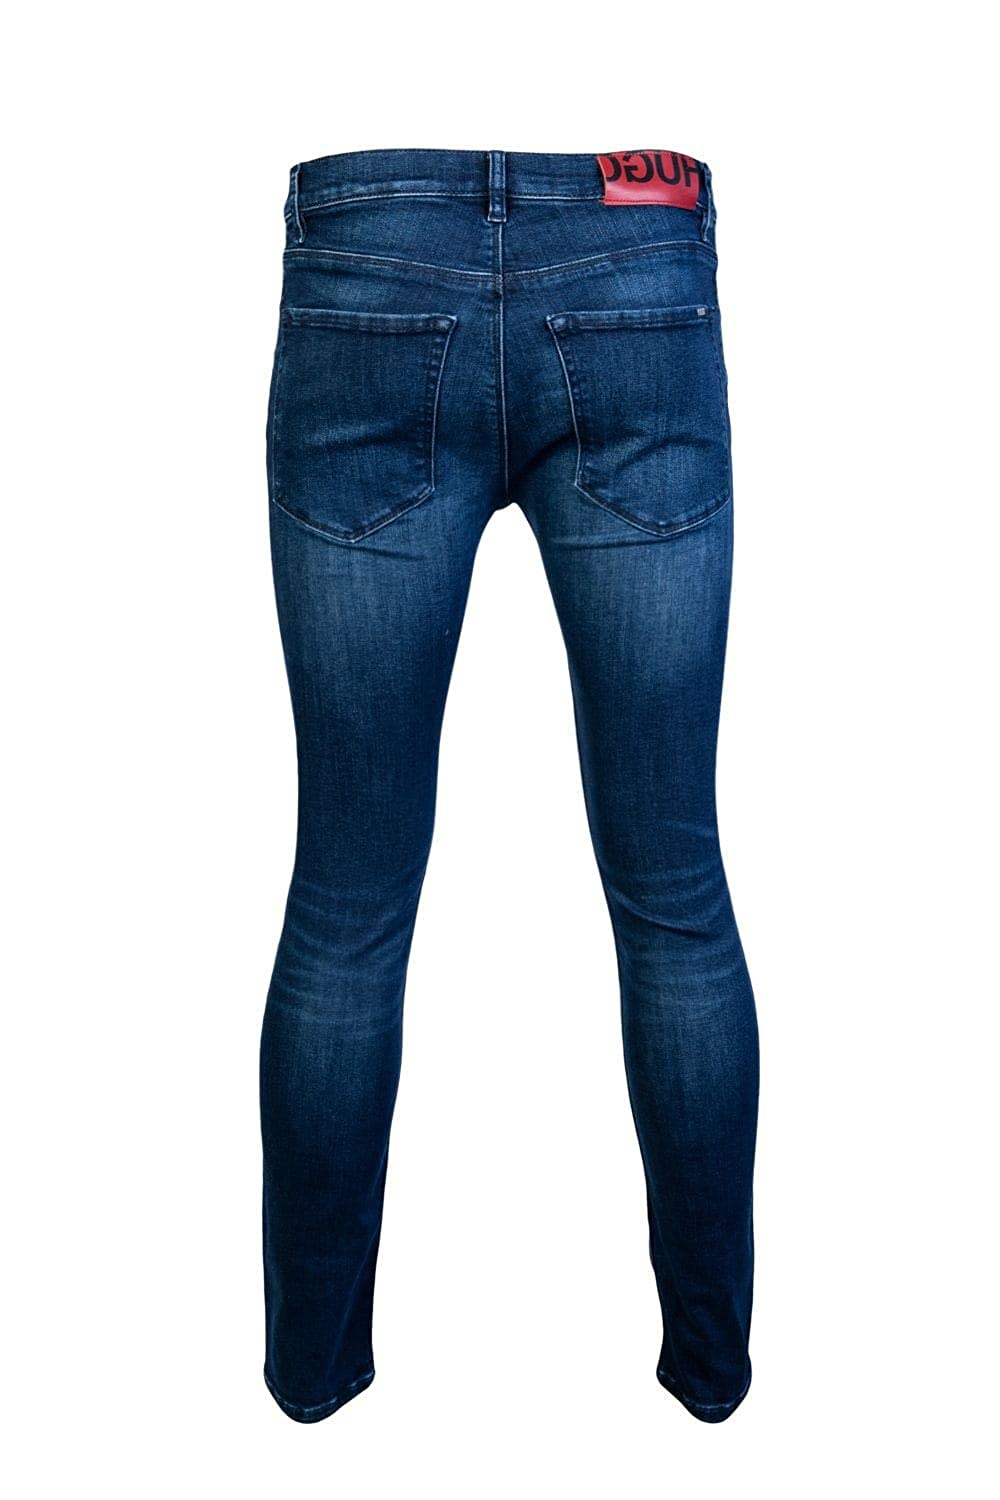 9678b461 Amazon.com: Hugo Boss Mens Skinny Jeans Hugo 734 50395066 Size 34/32 Blue: HUGO  BOSS: Clothing